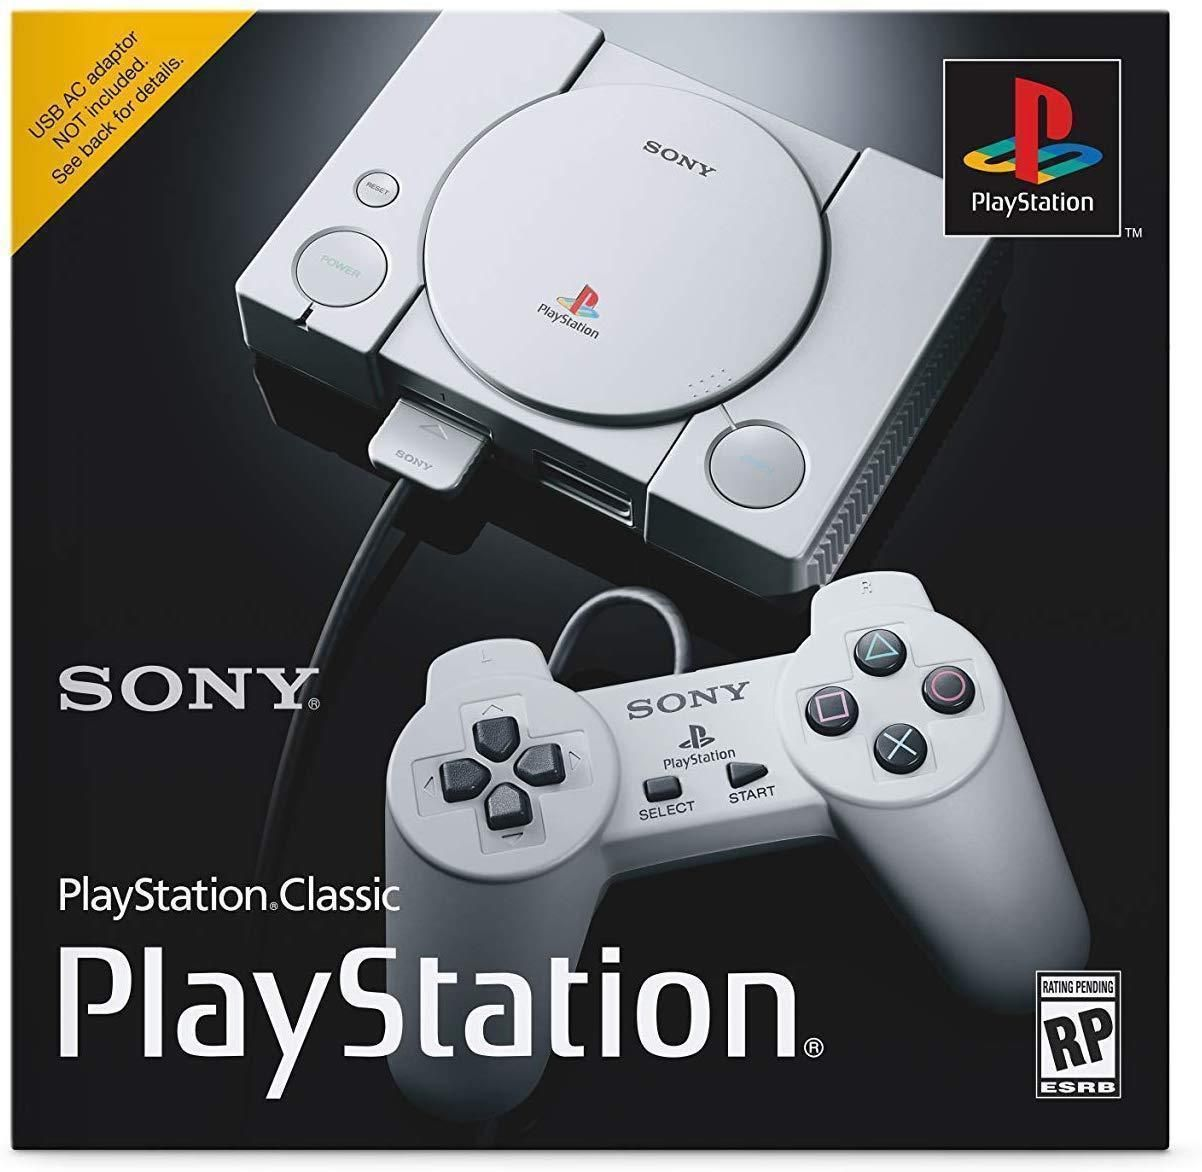 Playstation Classic Classic Video Games Playstation Consoles